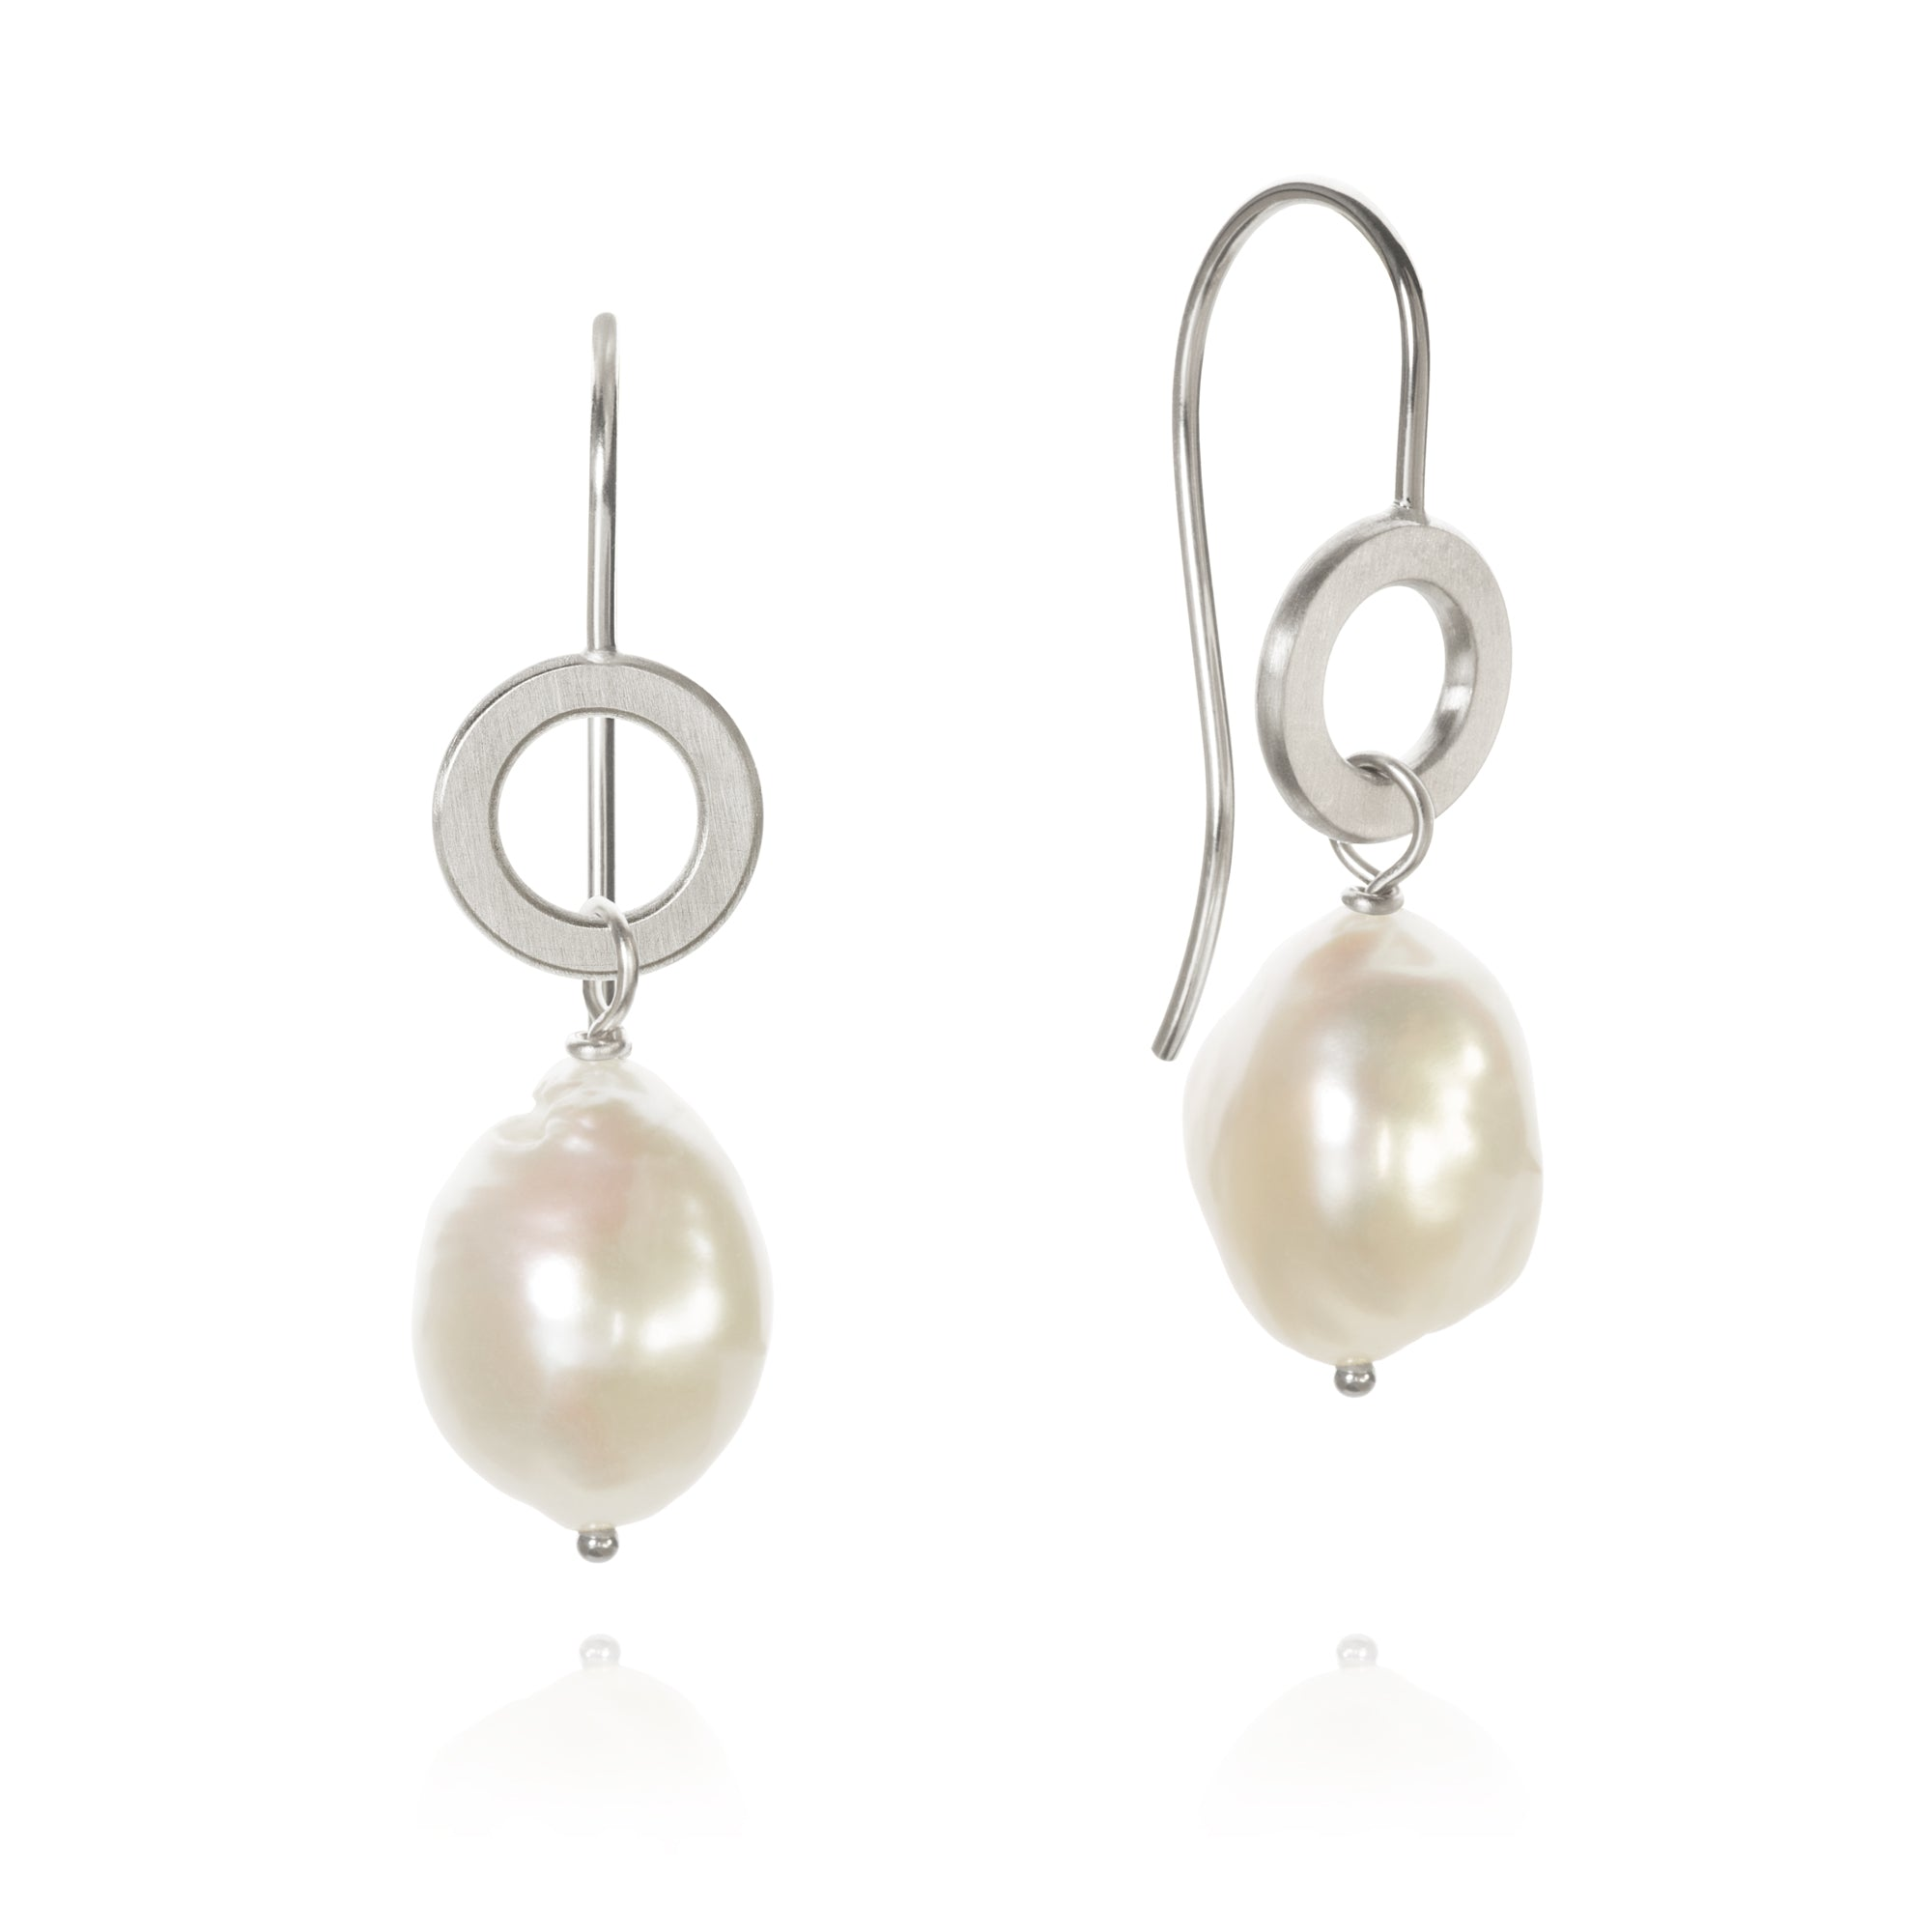 Ocean Pearl earrings with baroque freshwater pearls.